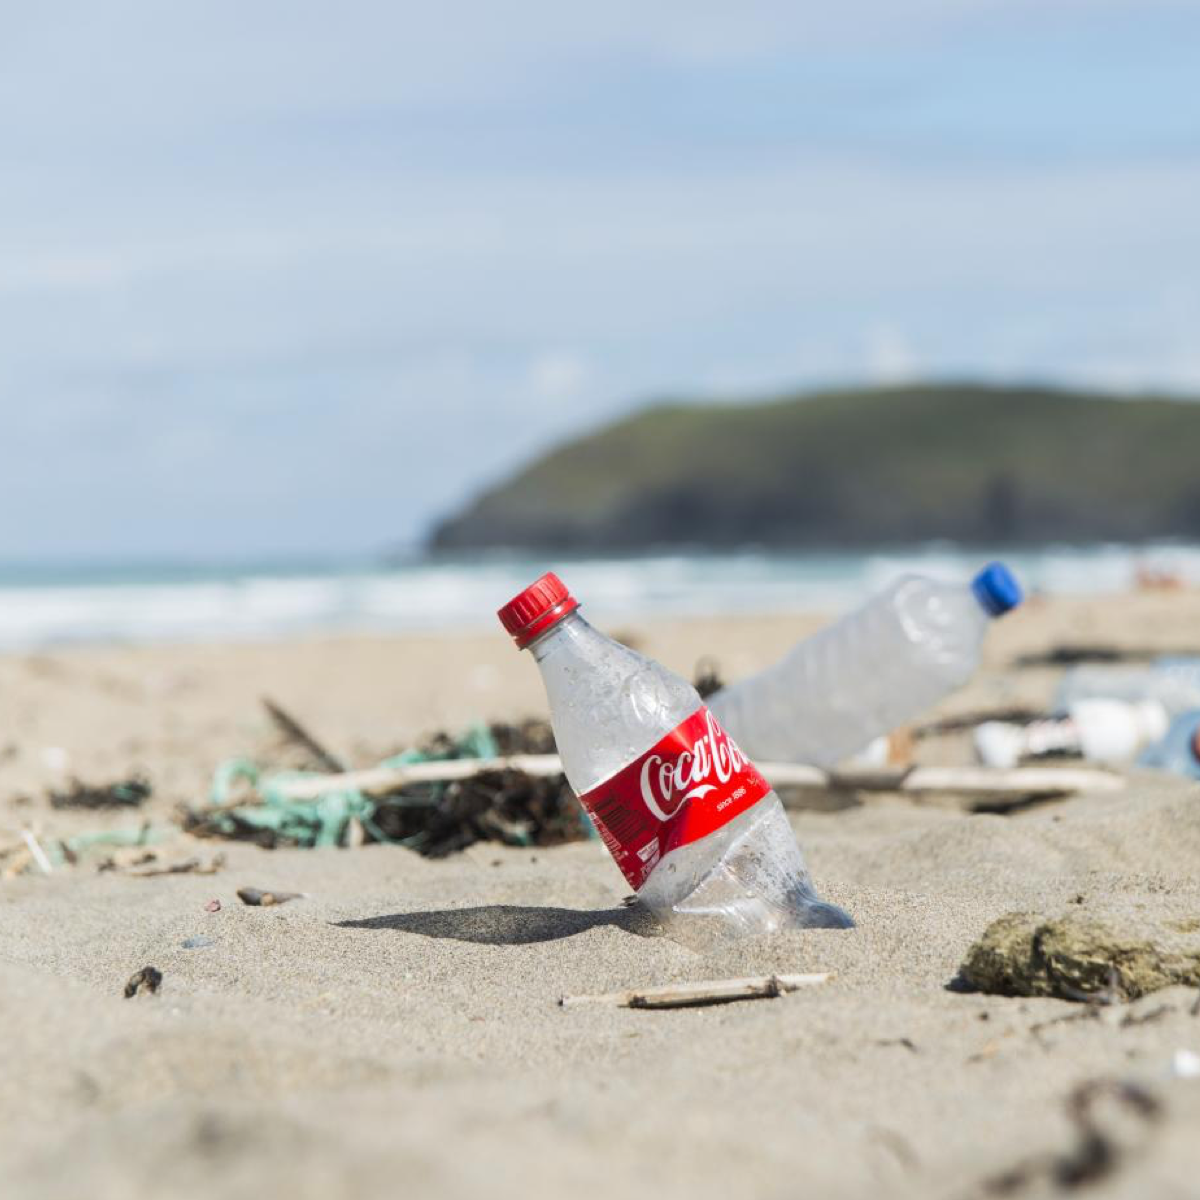 The great plastic tide